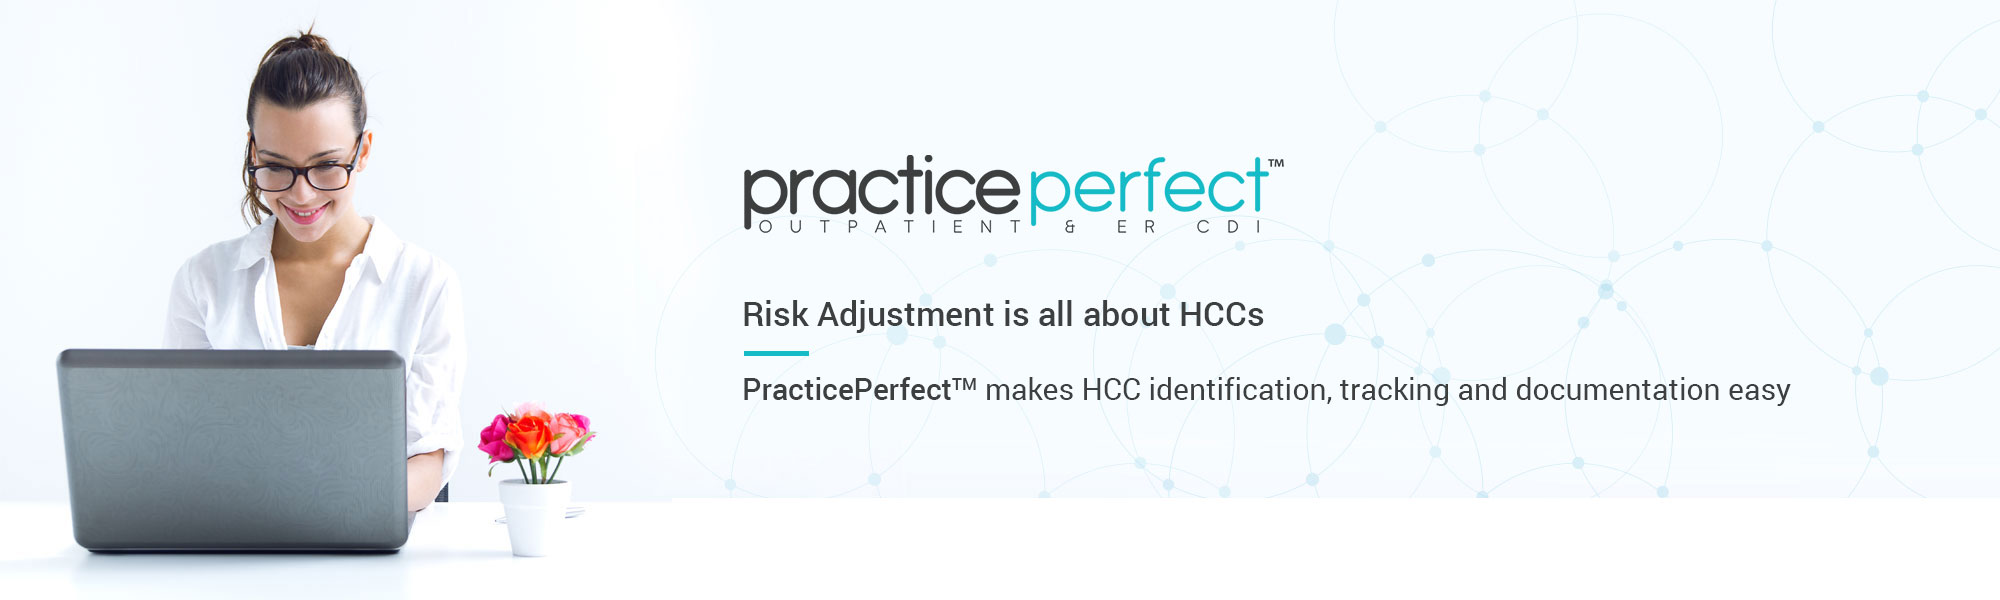 PracticePerfect | Risk Adjustment is all about HCCs